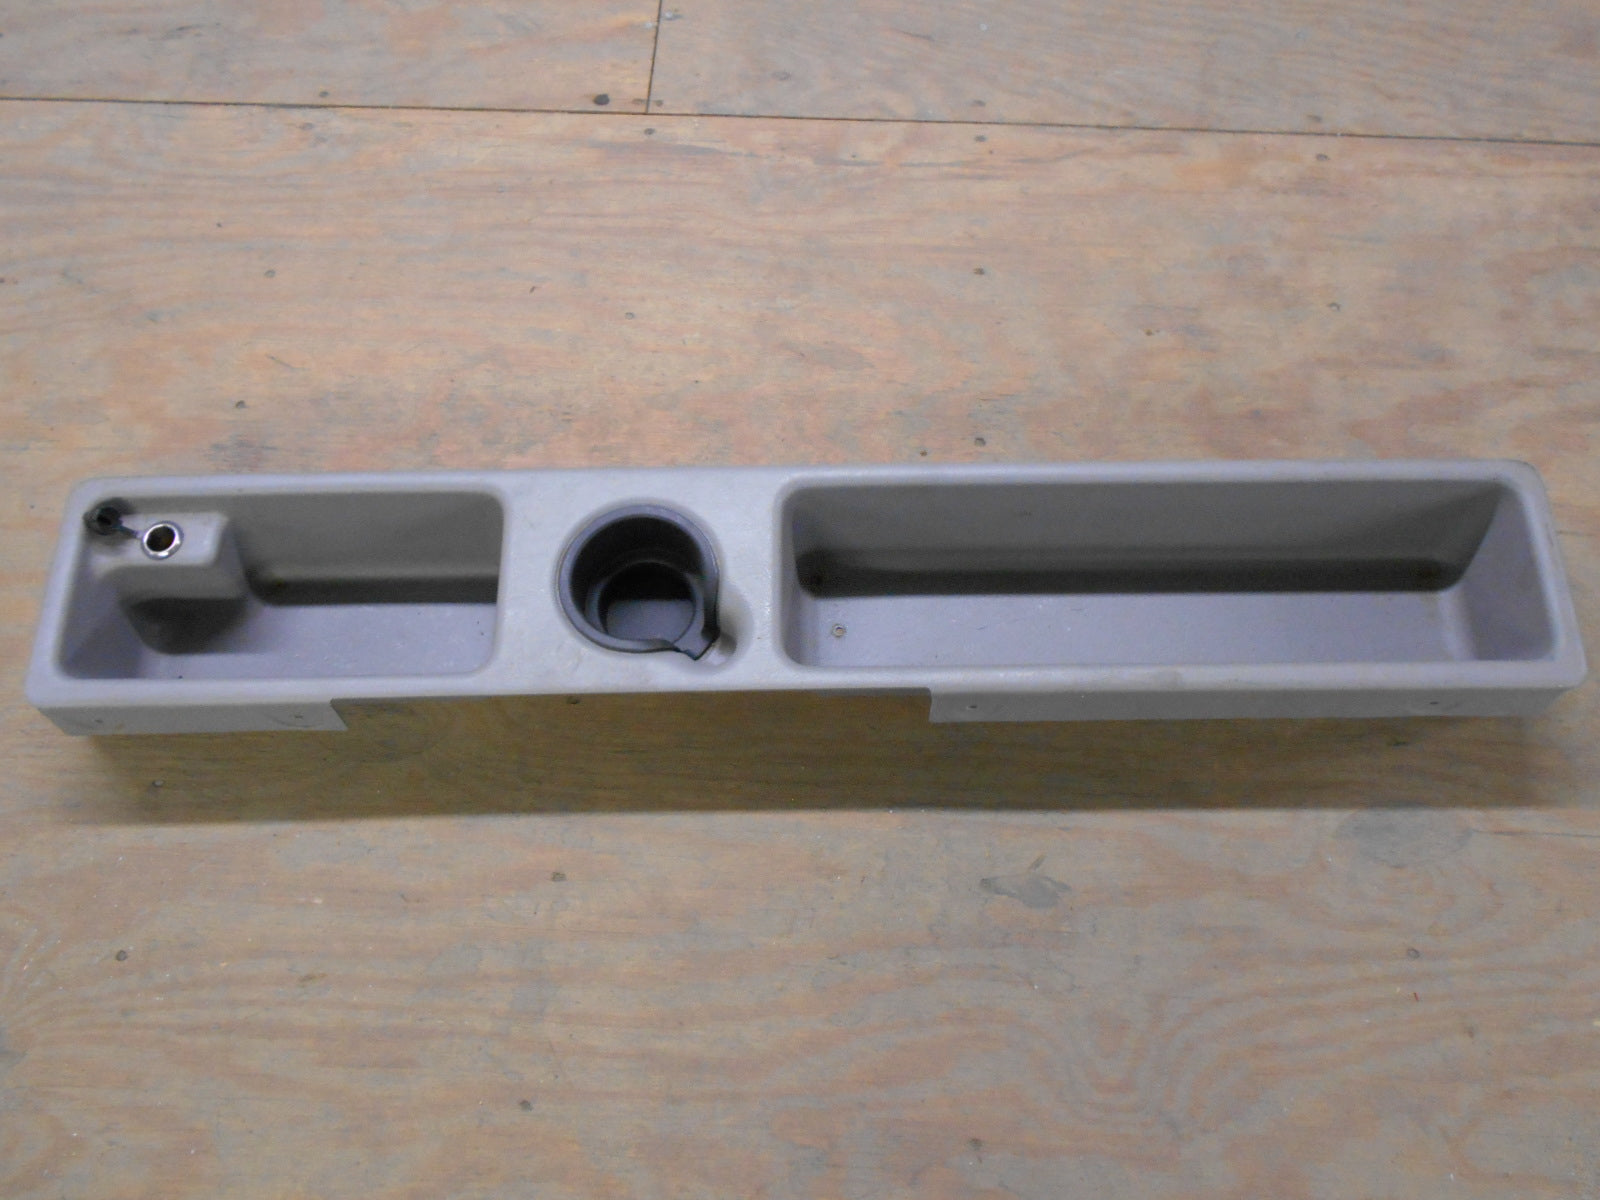 BUNK END TRAY - 29-04347M001-251